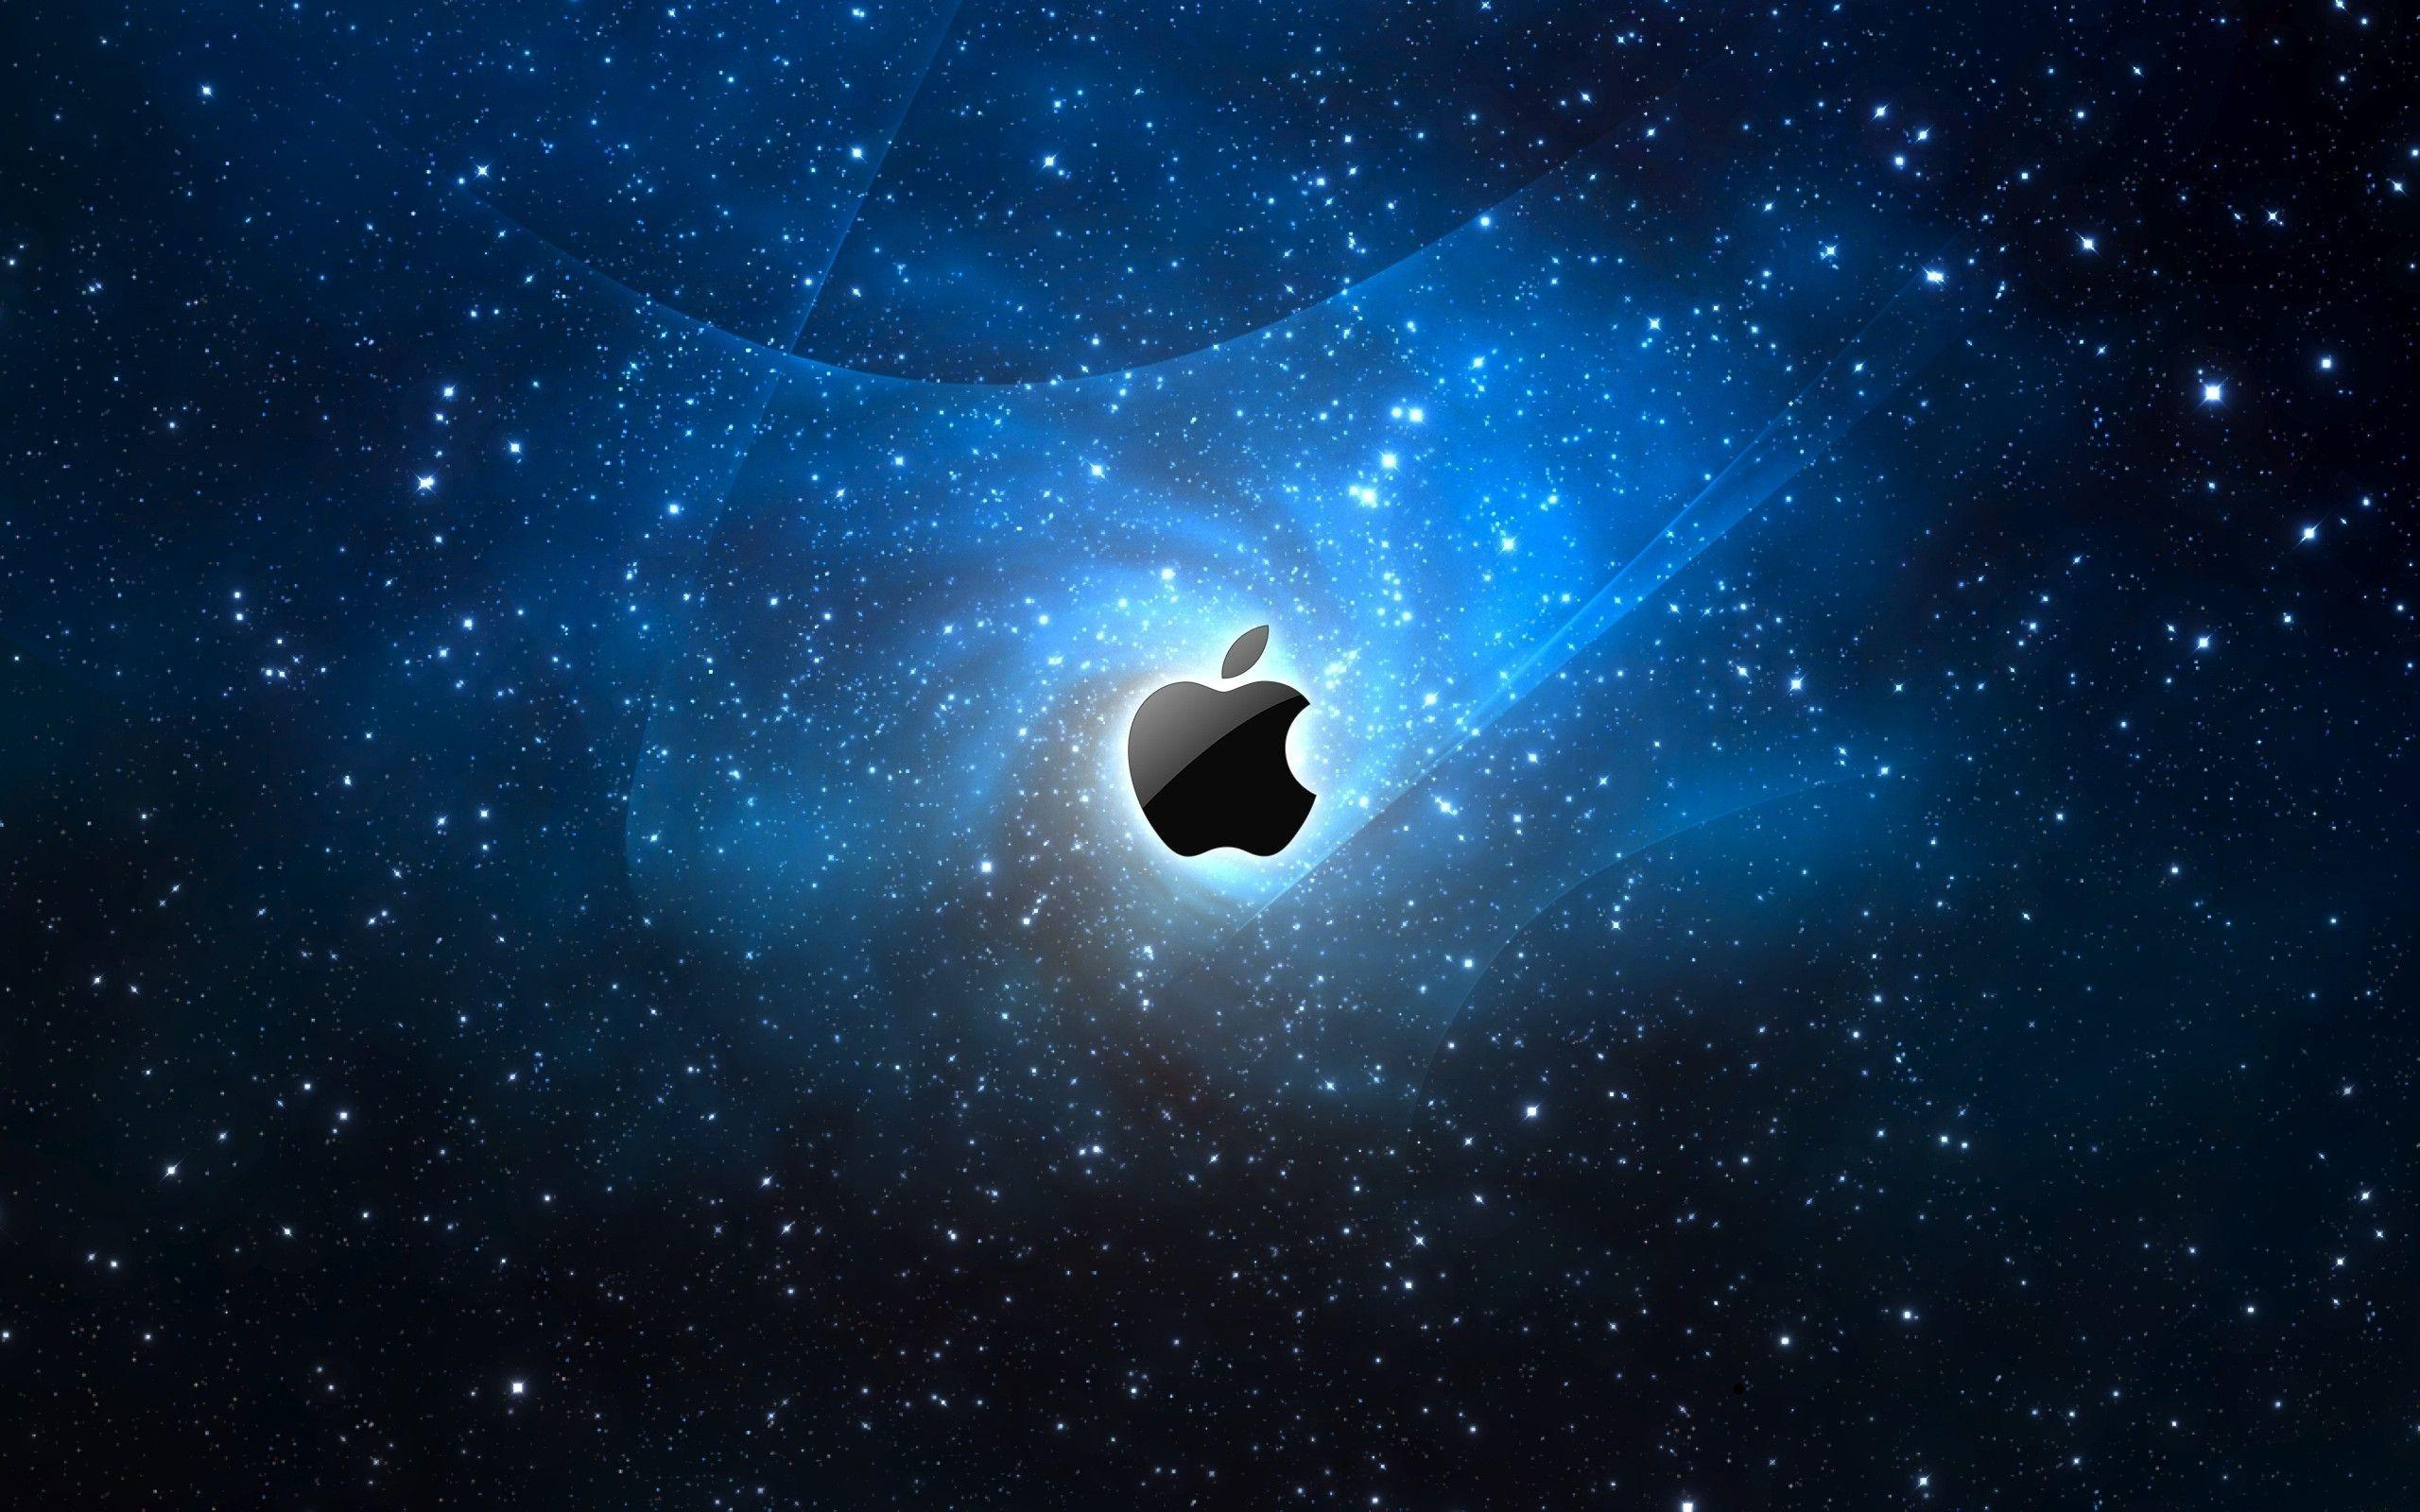 Apple in Blue Space Free Stock Photo and Wallpapers